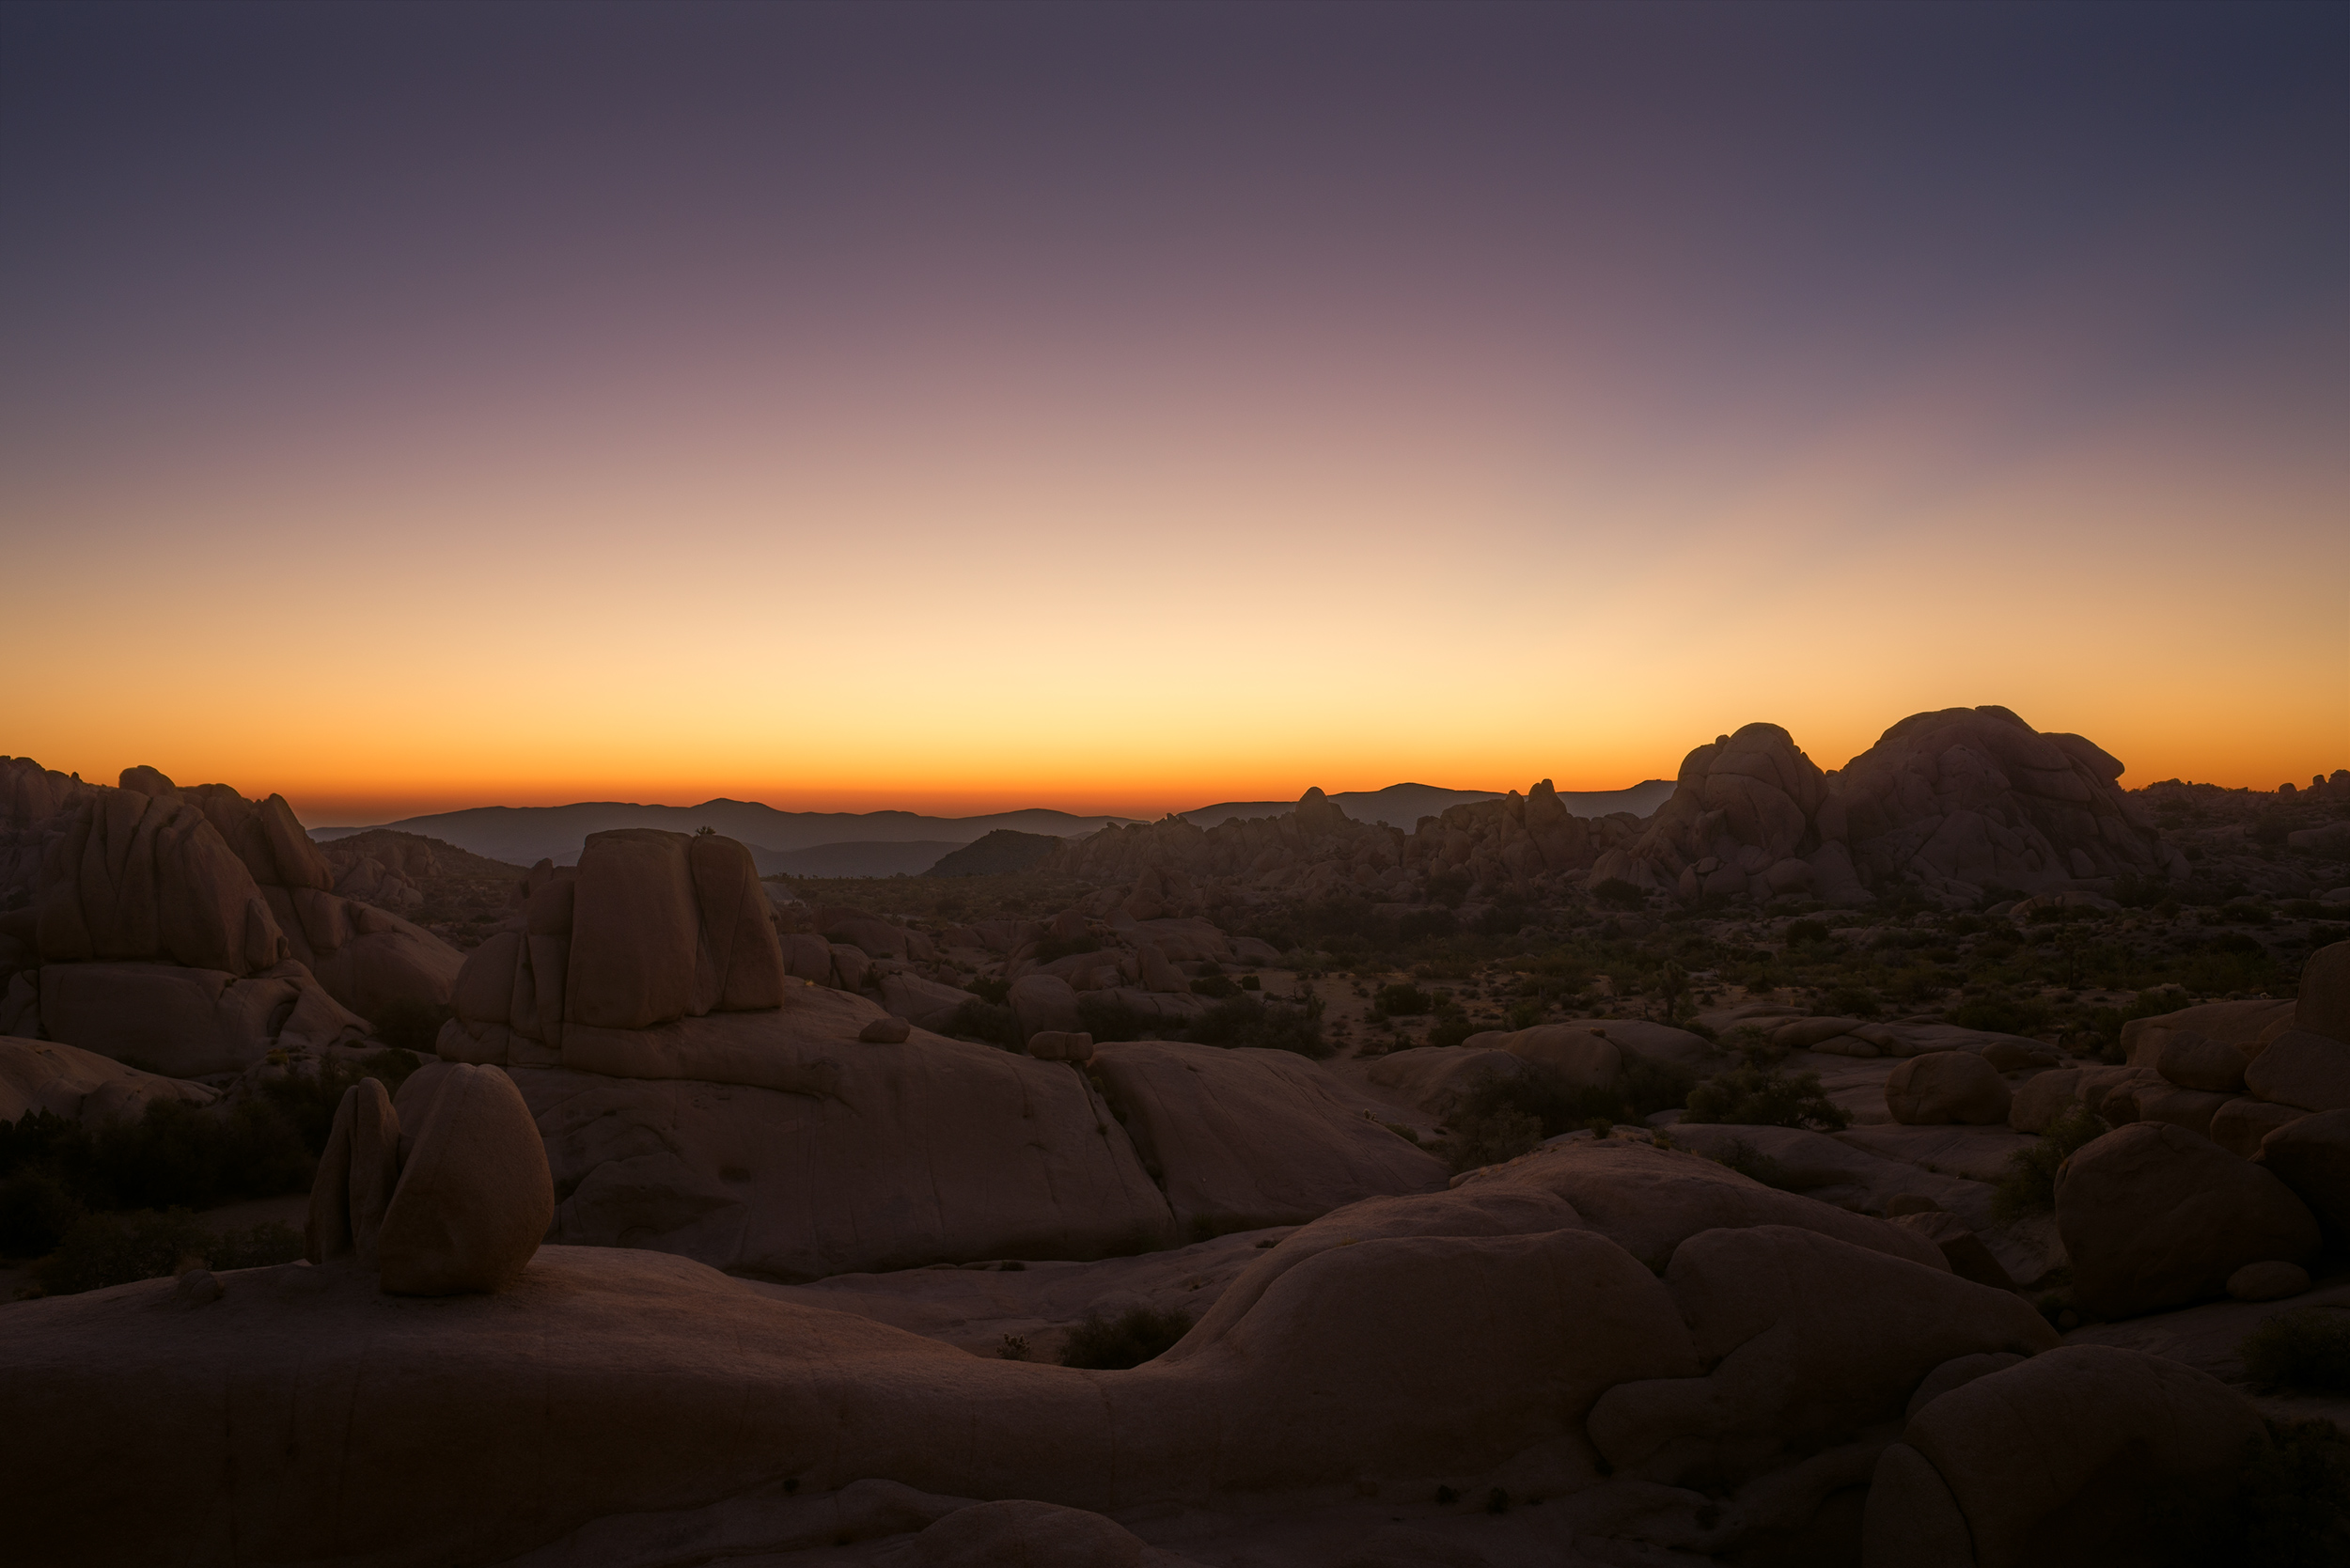 Just before sunrise at Jumbo Rocks Area.